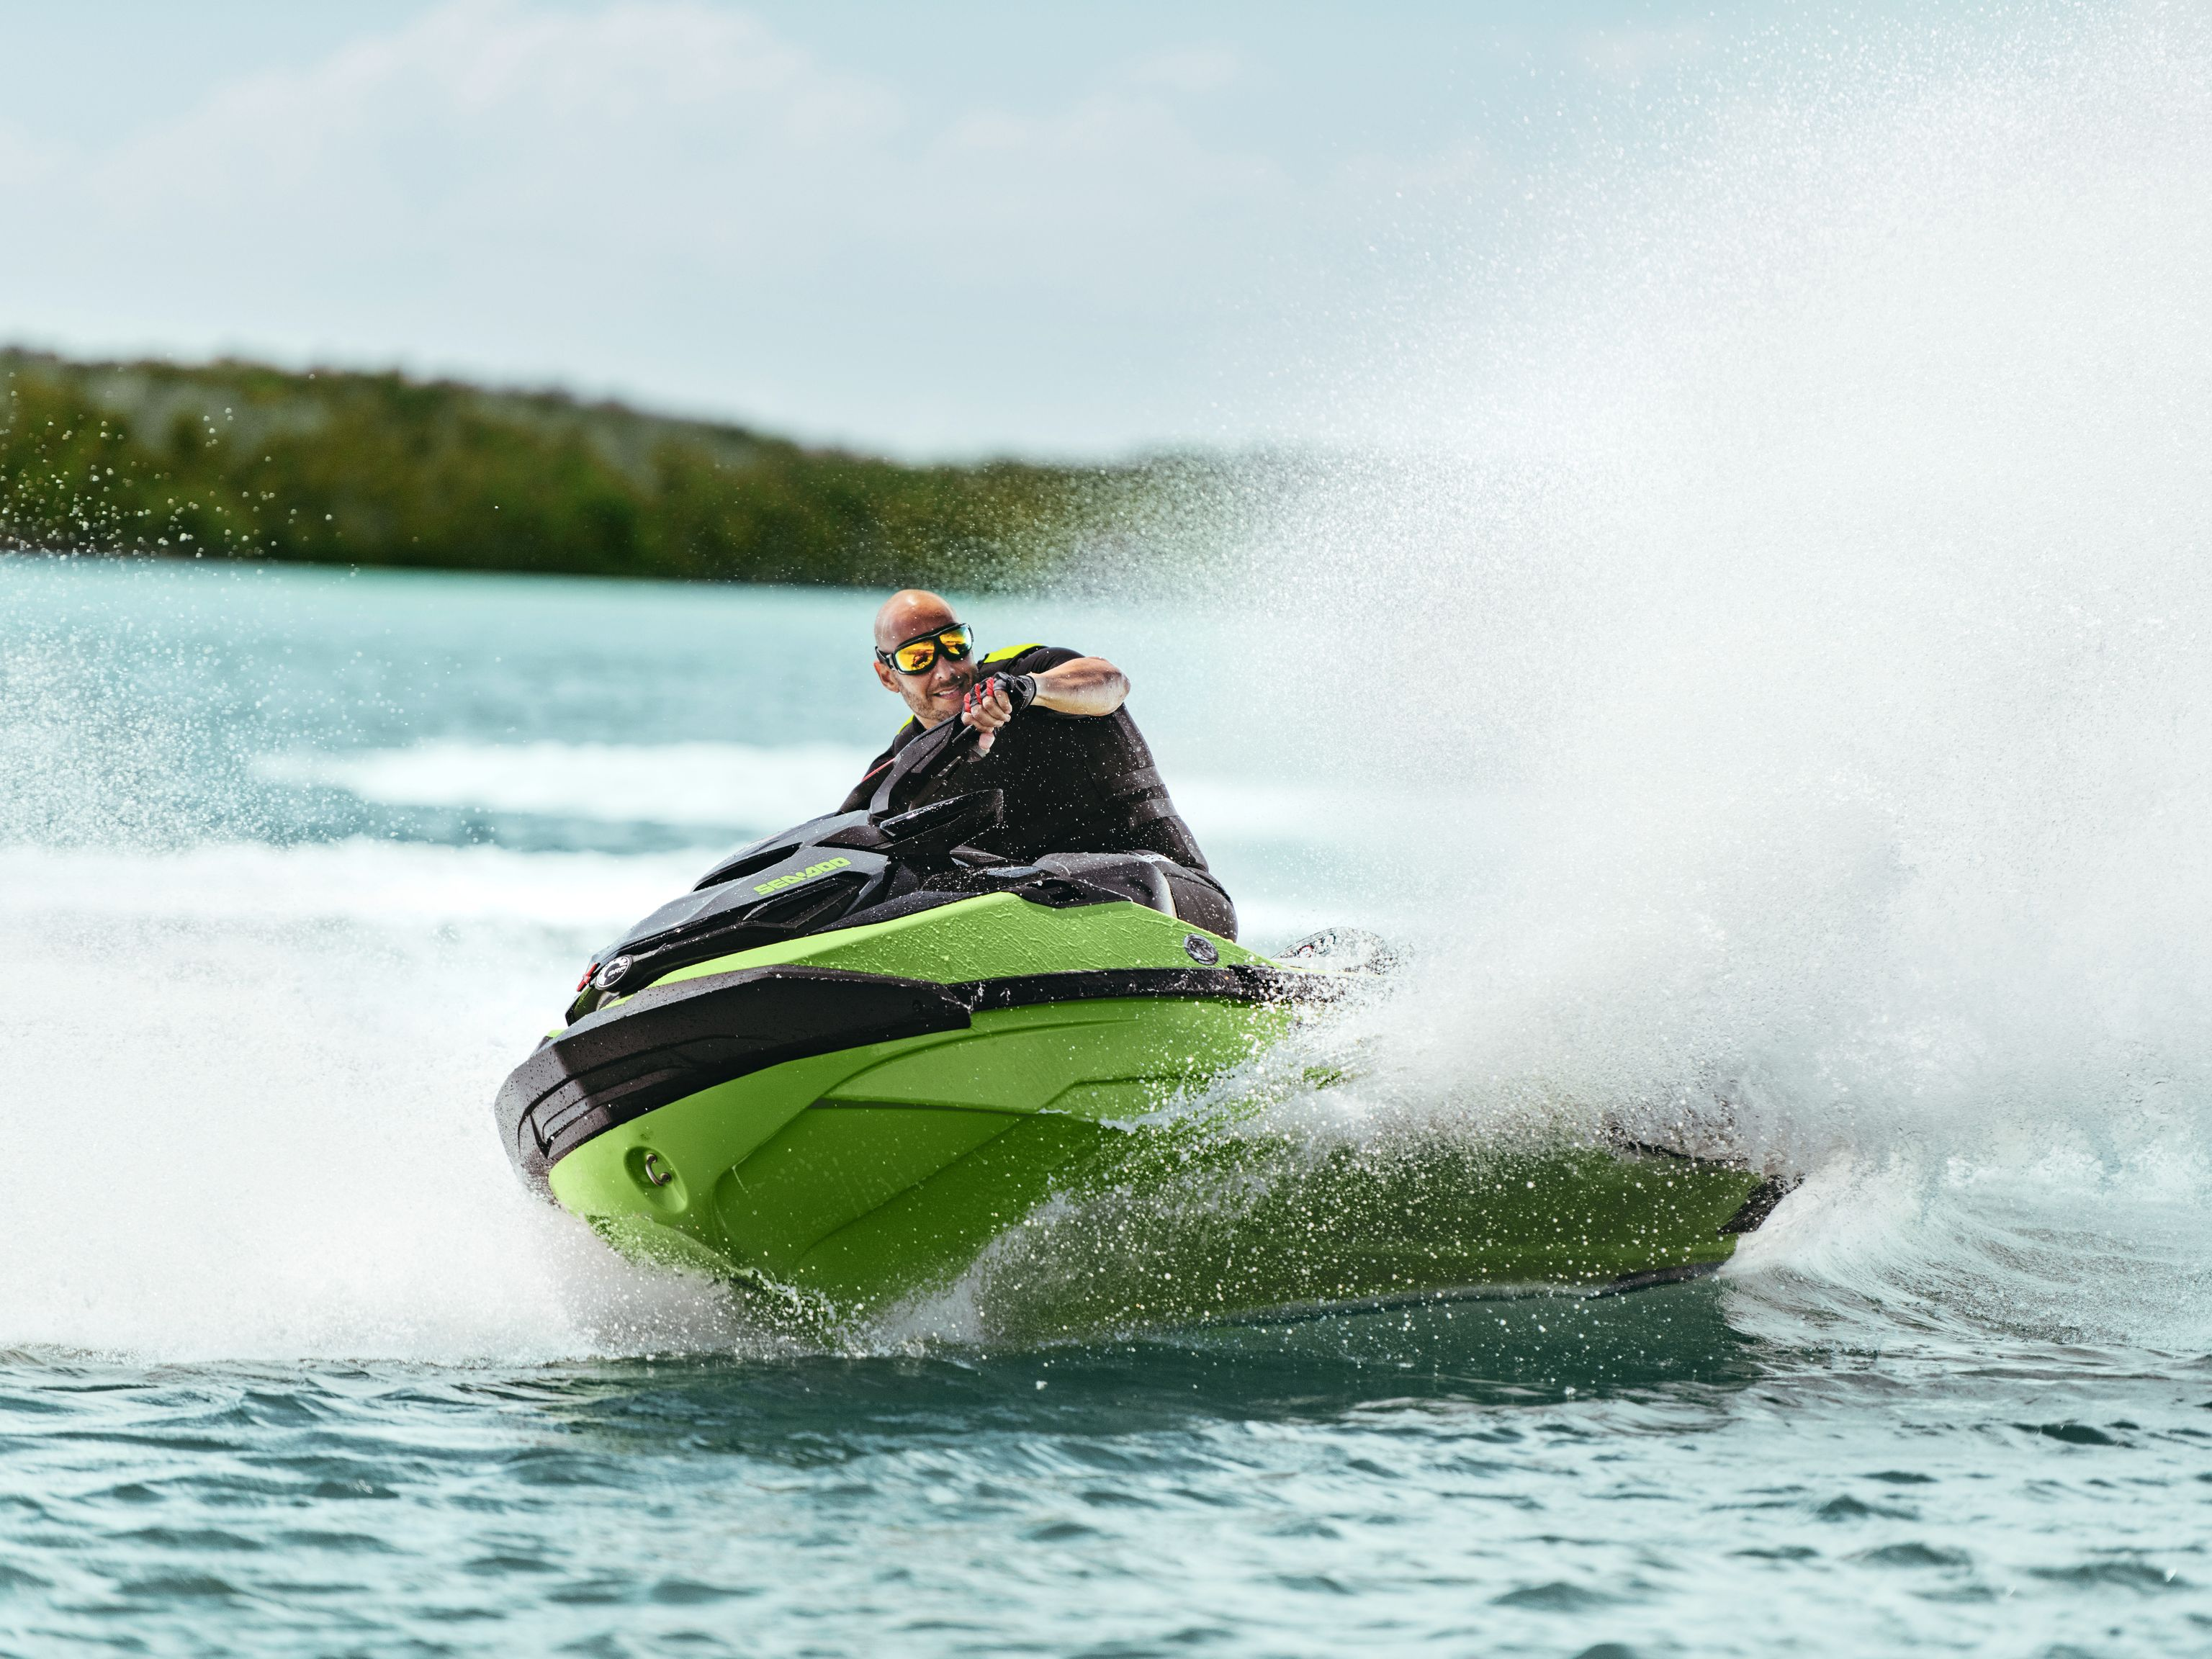 Prepping your Sea-Doo for Summer Fun